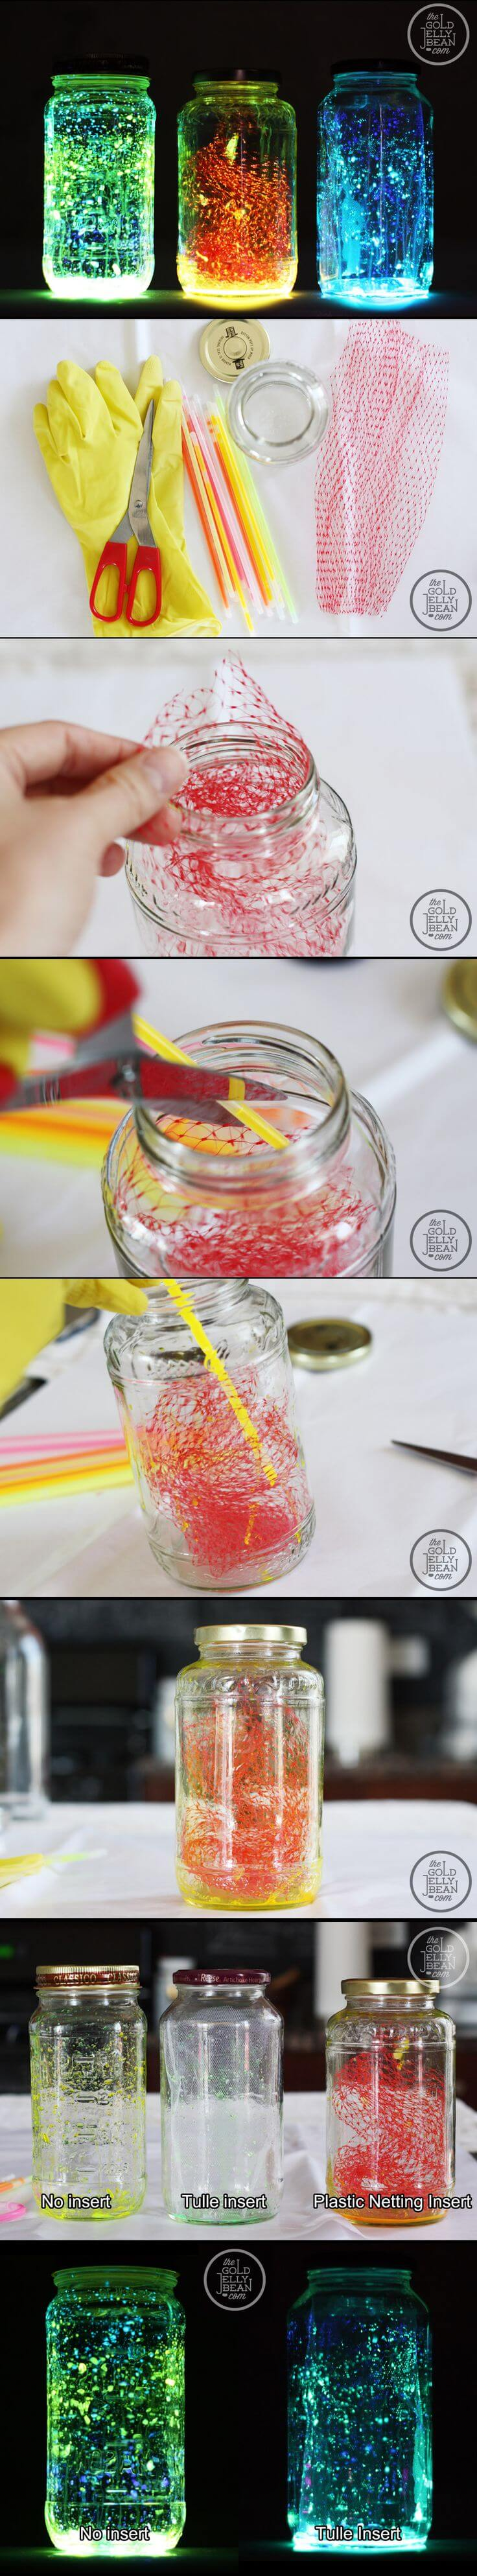 DIY Fairy Dust Jars are a Surefire Hit for Kids